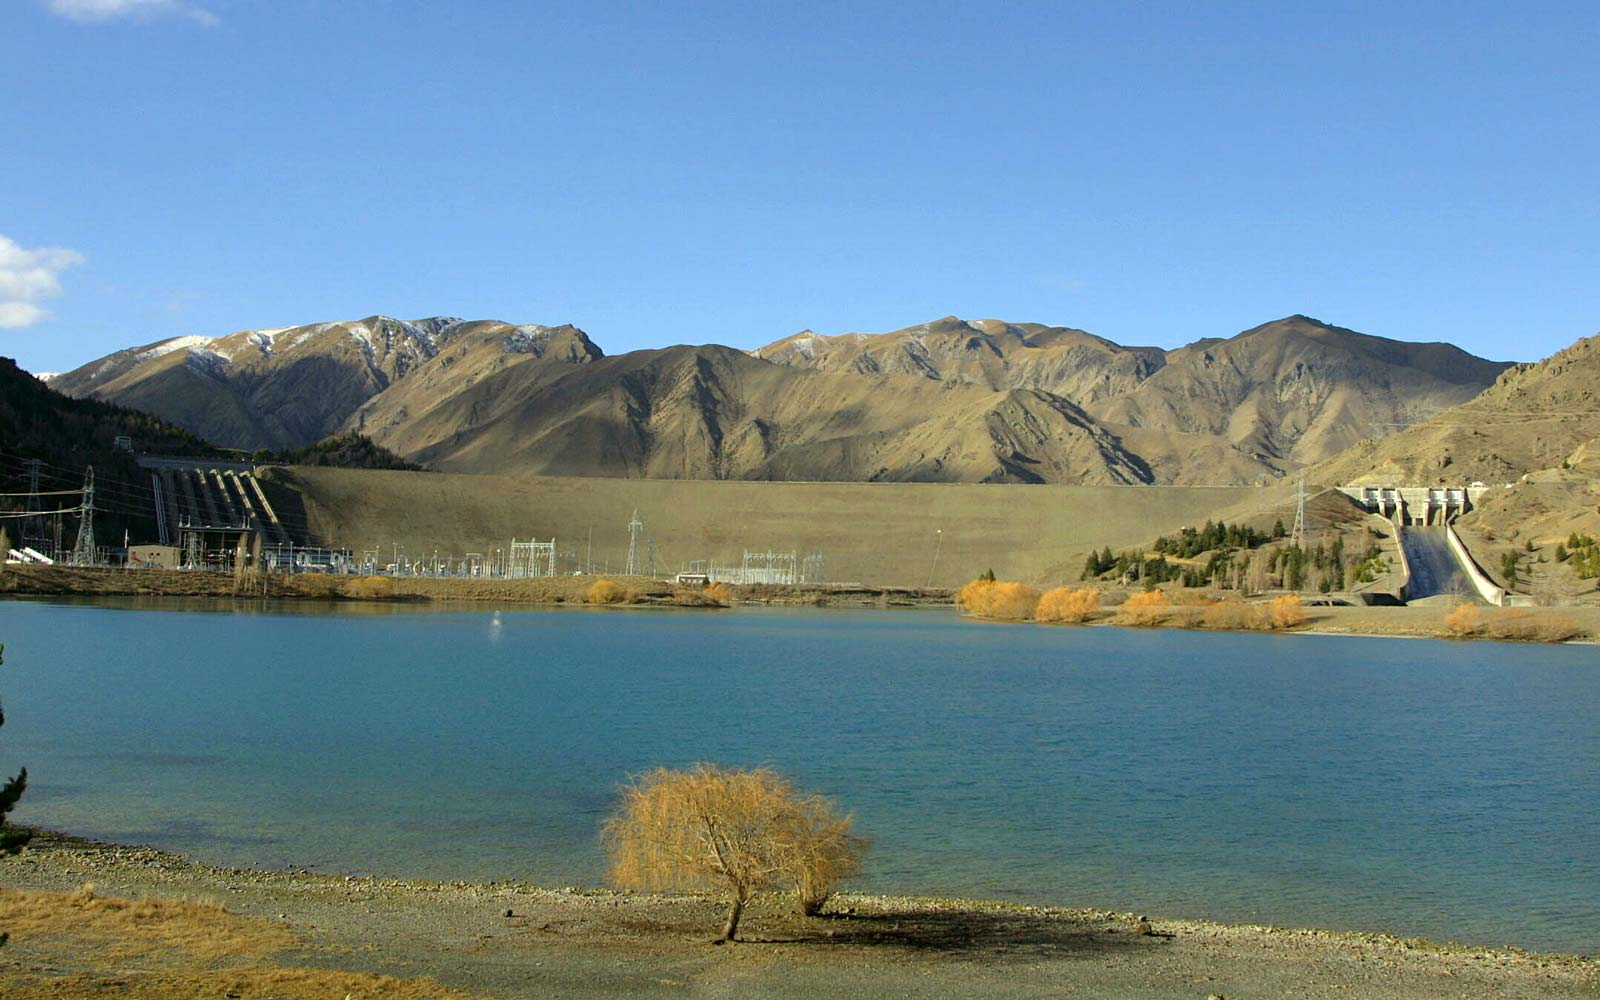 The lake at the Benmore dam and Power Station in the Waitaki Valley